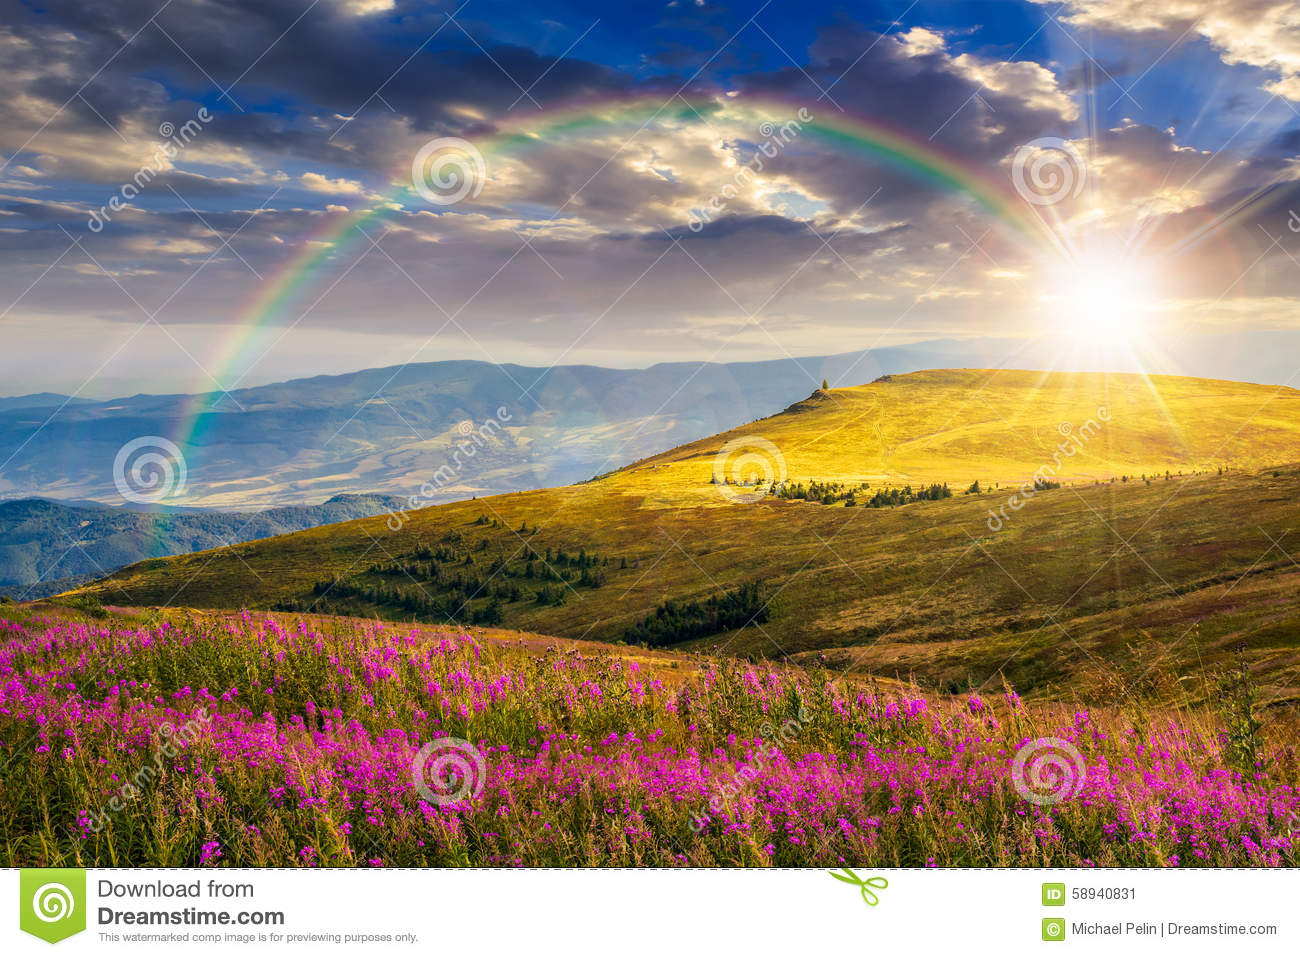 Spring Mountain Landscape Flowers Purple Colored Hills: Wild Flowers On The Mountain Hill At Sunset Stock Image